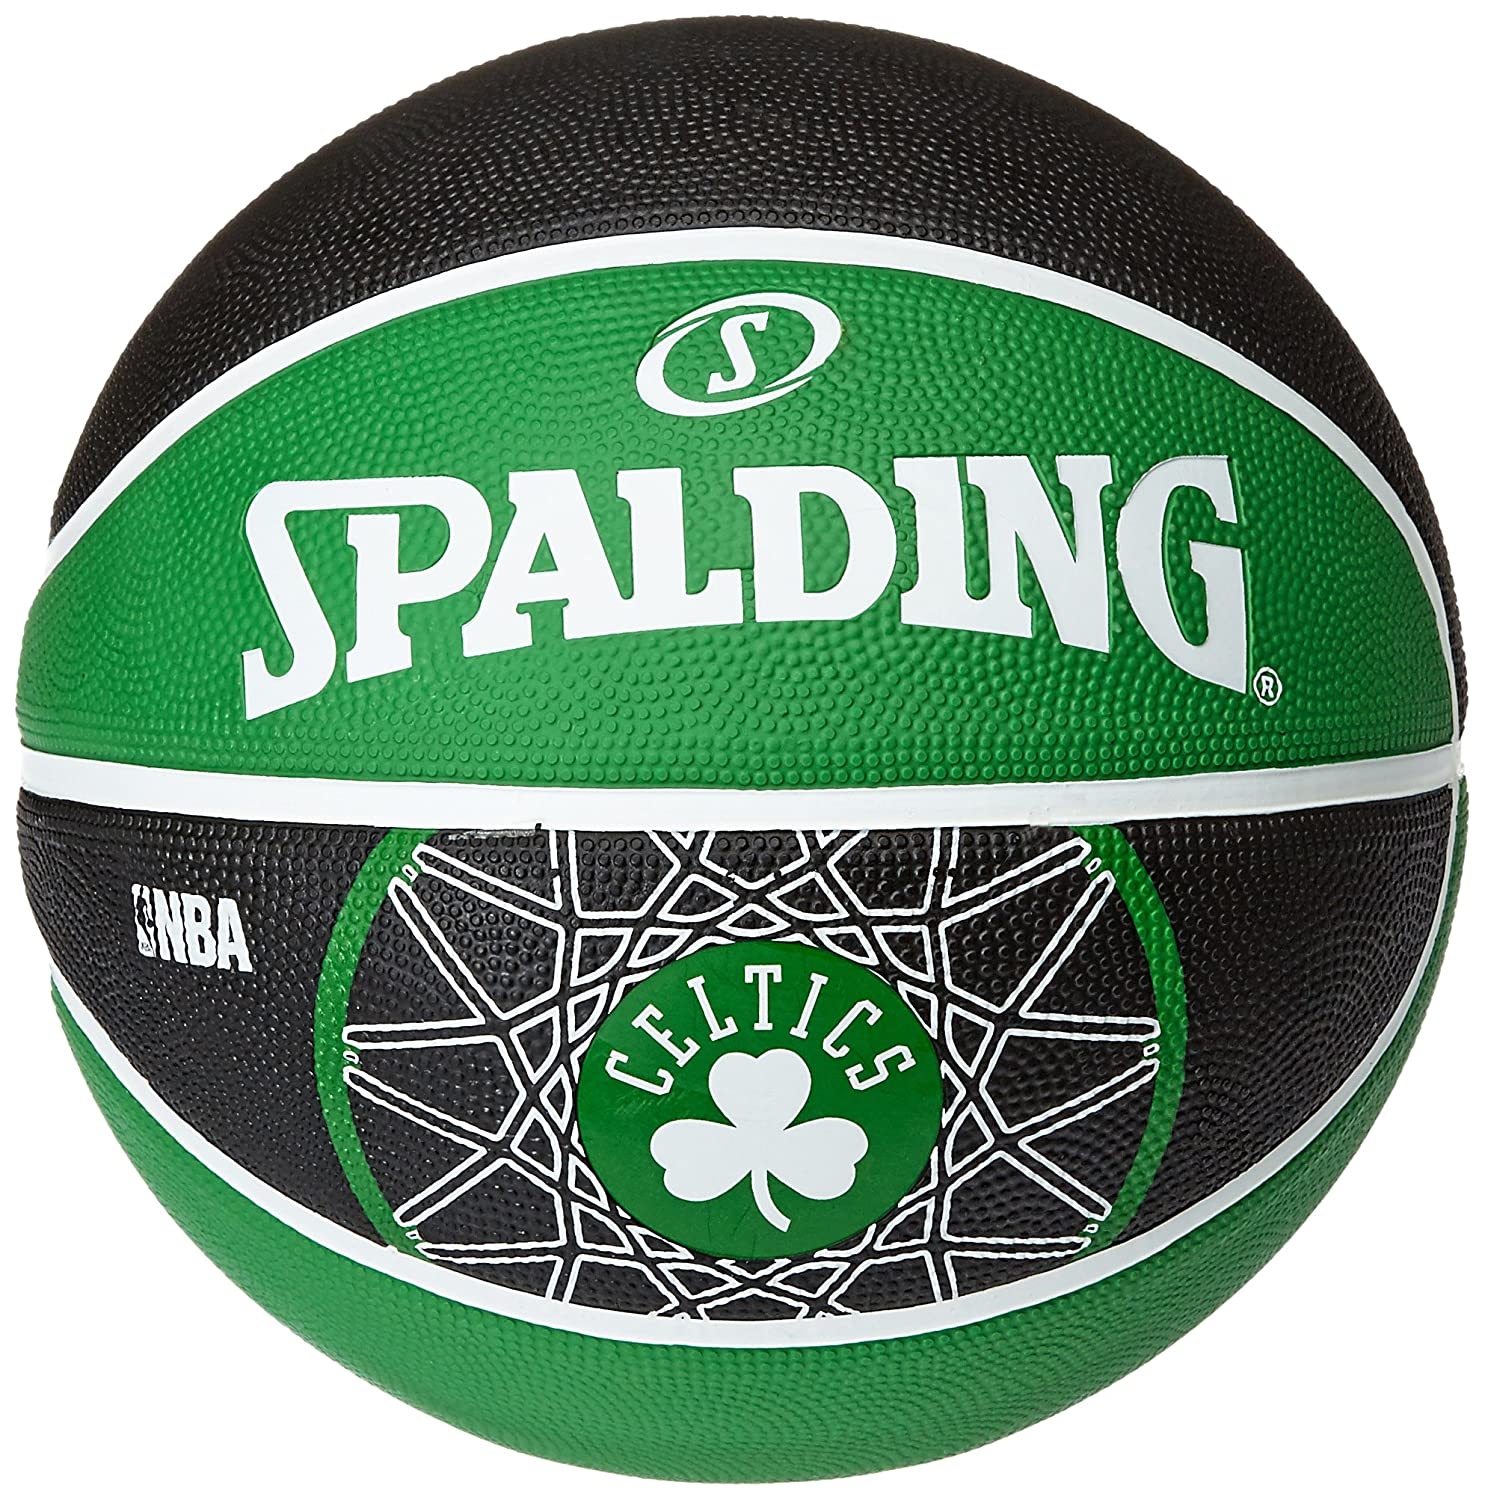 image regarding Boston Celtics Printable Schedule titled Spalding Boston Celtics Workers Ball - Multi-Color, Dimension 7